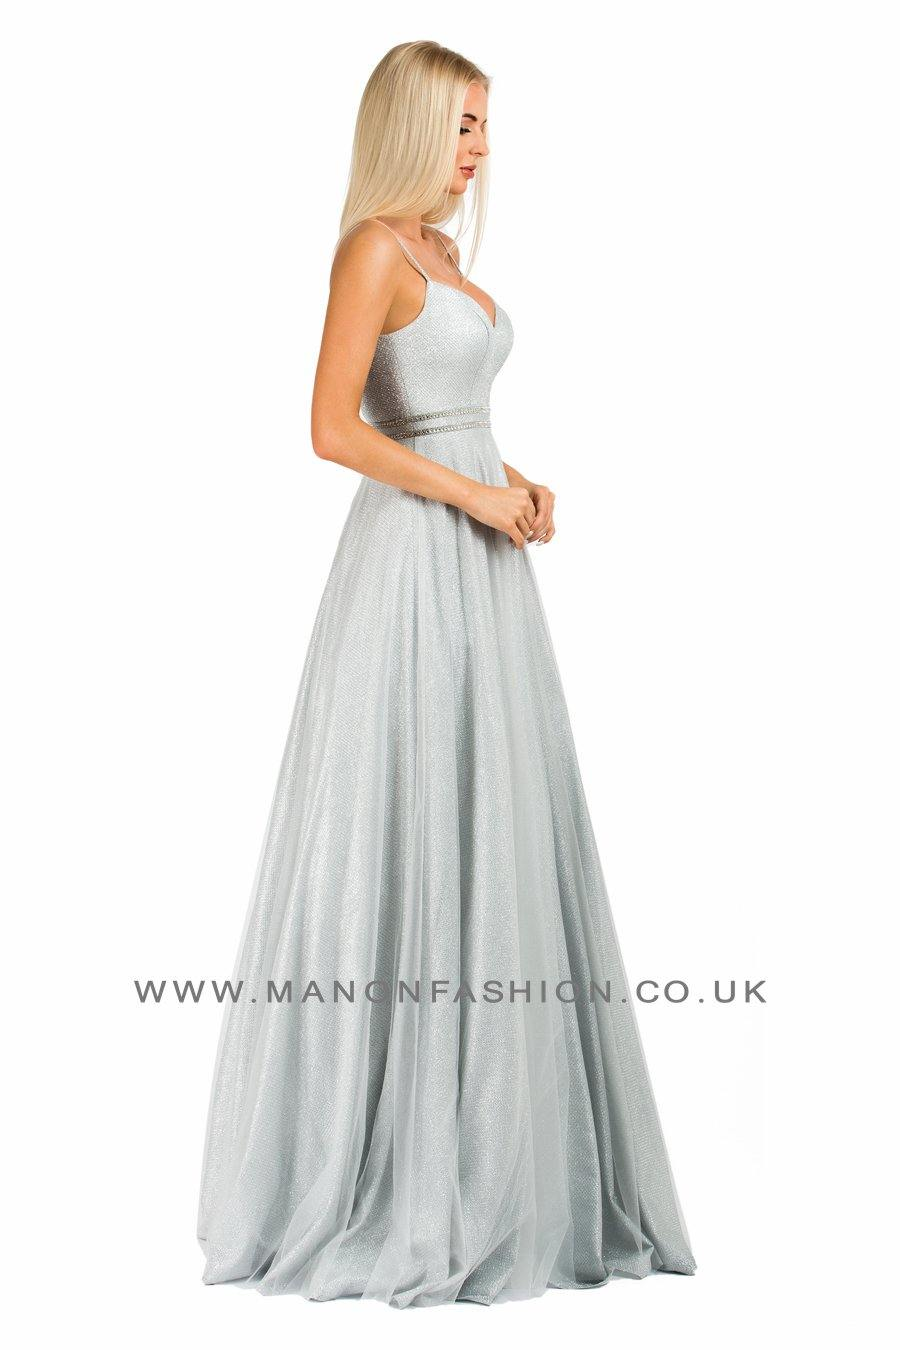 MA19011 - Elliott Chambers    - Bridal -  Debs Dresses -  Communion dresses